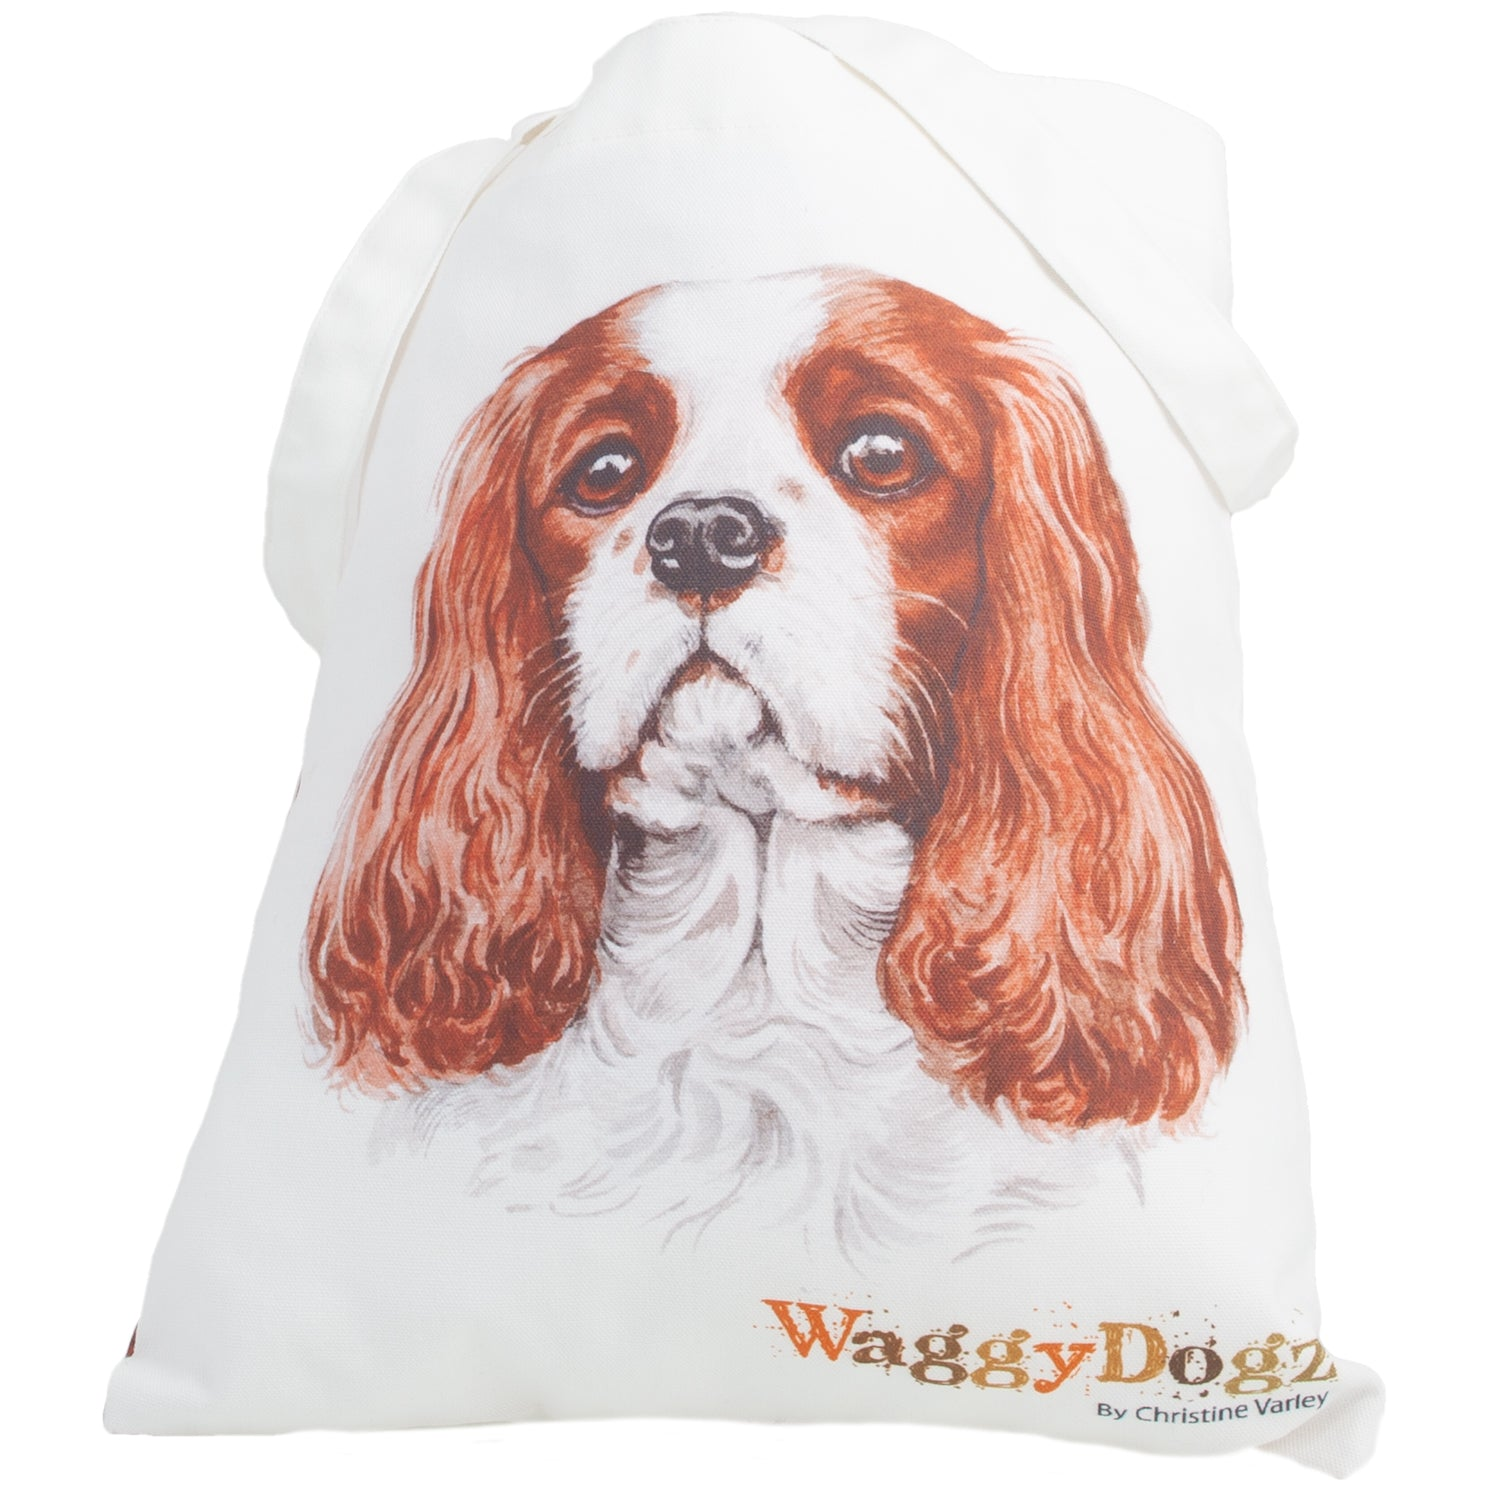 Dog Lover Gifts available at Dog Krazy Gifts. Cavalier King Charles Tote Bag, part of our Christine Varley collection – available at www.dogkrazygifts.co.uk